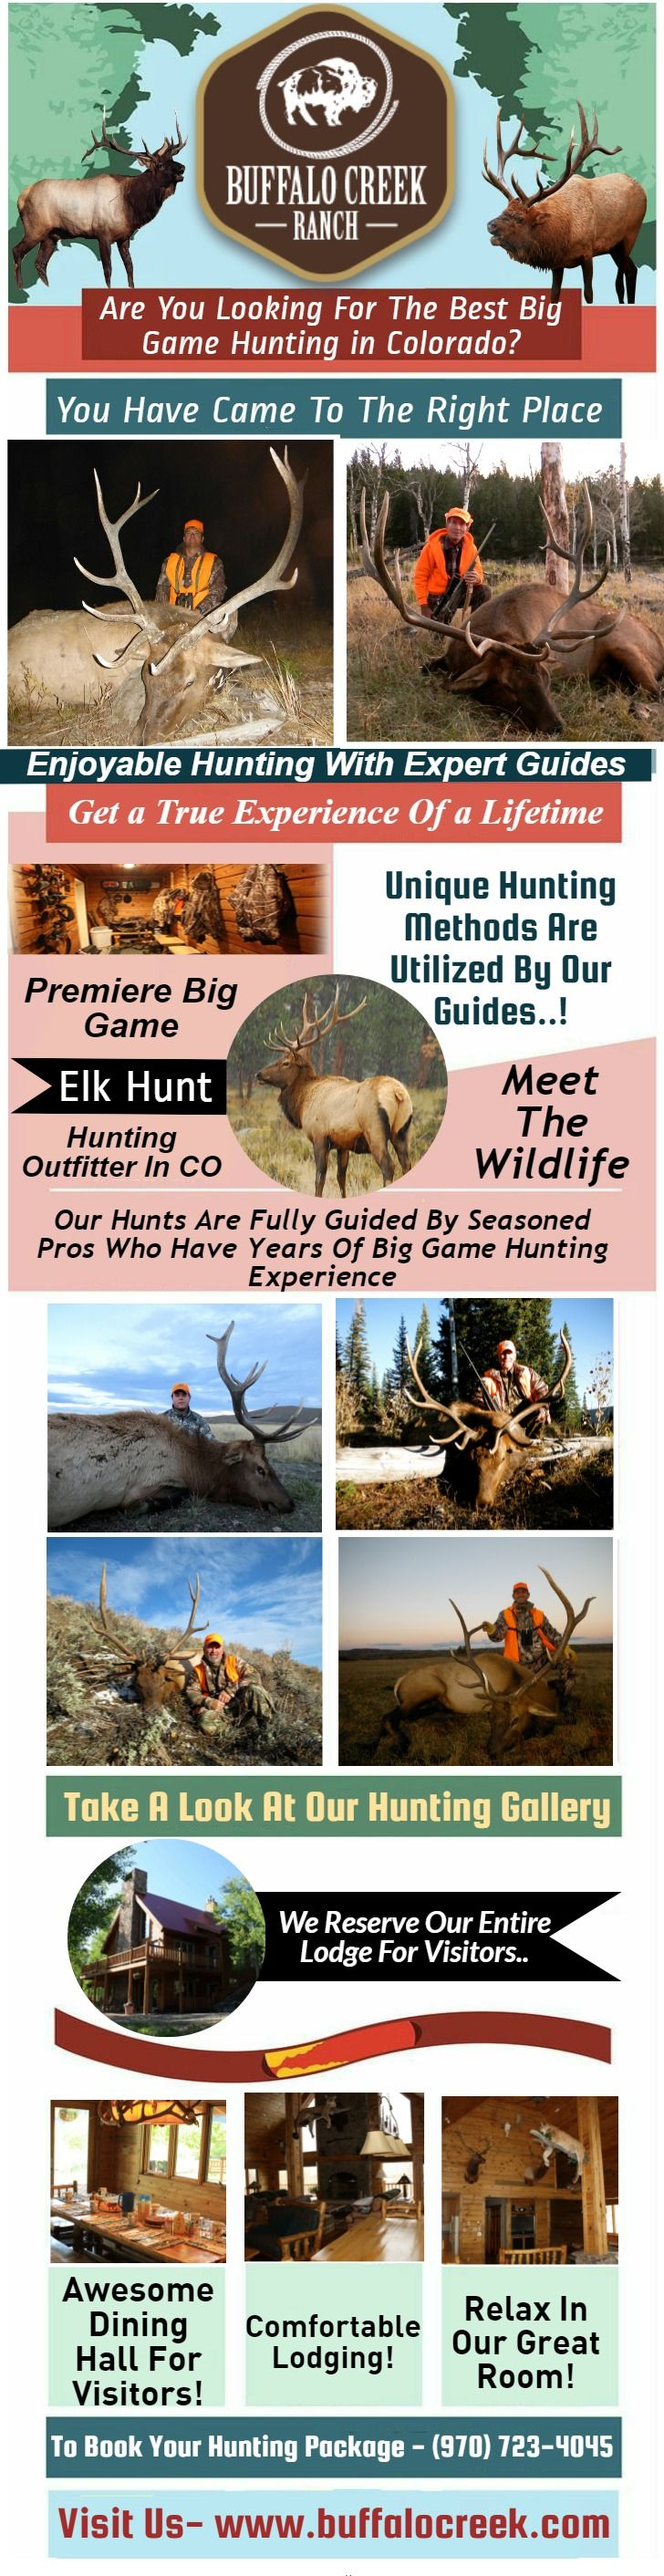 Buffalo Creek Ranch provides private access to over 18,000 acres of land. Hunter's can find great elk hunting with some of the most spectacular scenery in Colorado. To book your next hunting trip call our office at - (970) 723-4045.